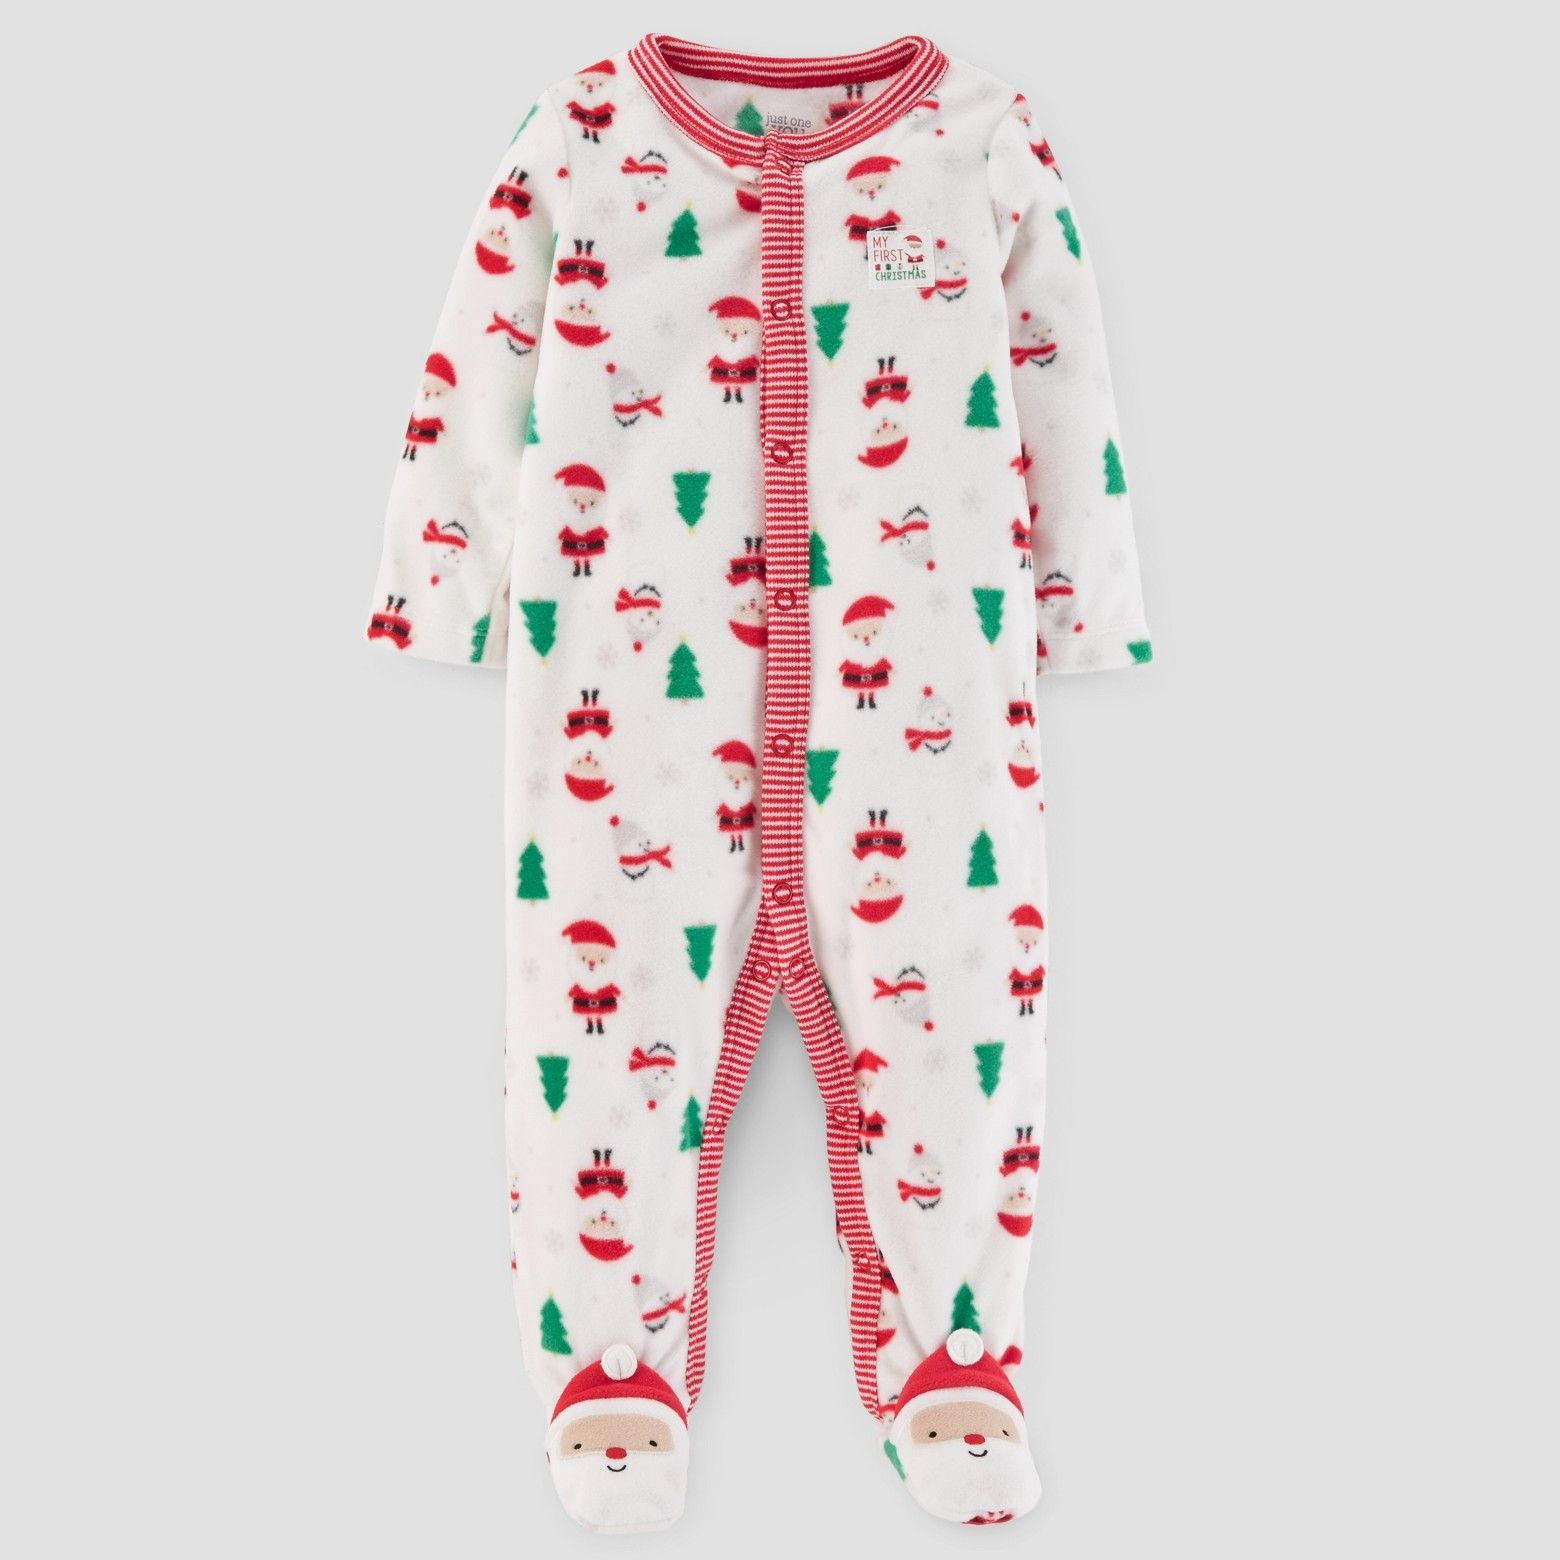 7d8ba625005a8 maternity clothing. baby girl first year essentials. group of kids ...